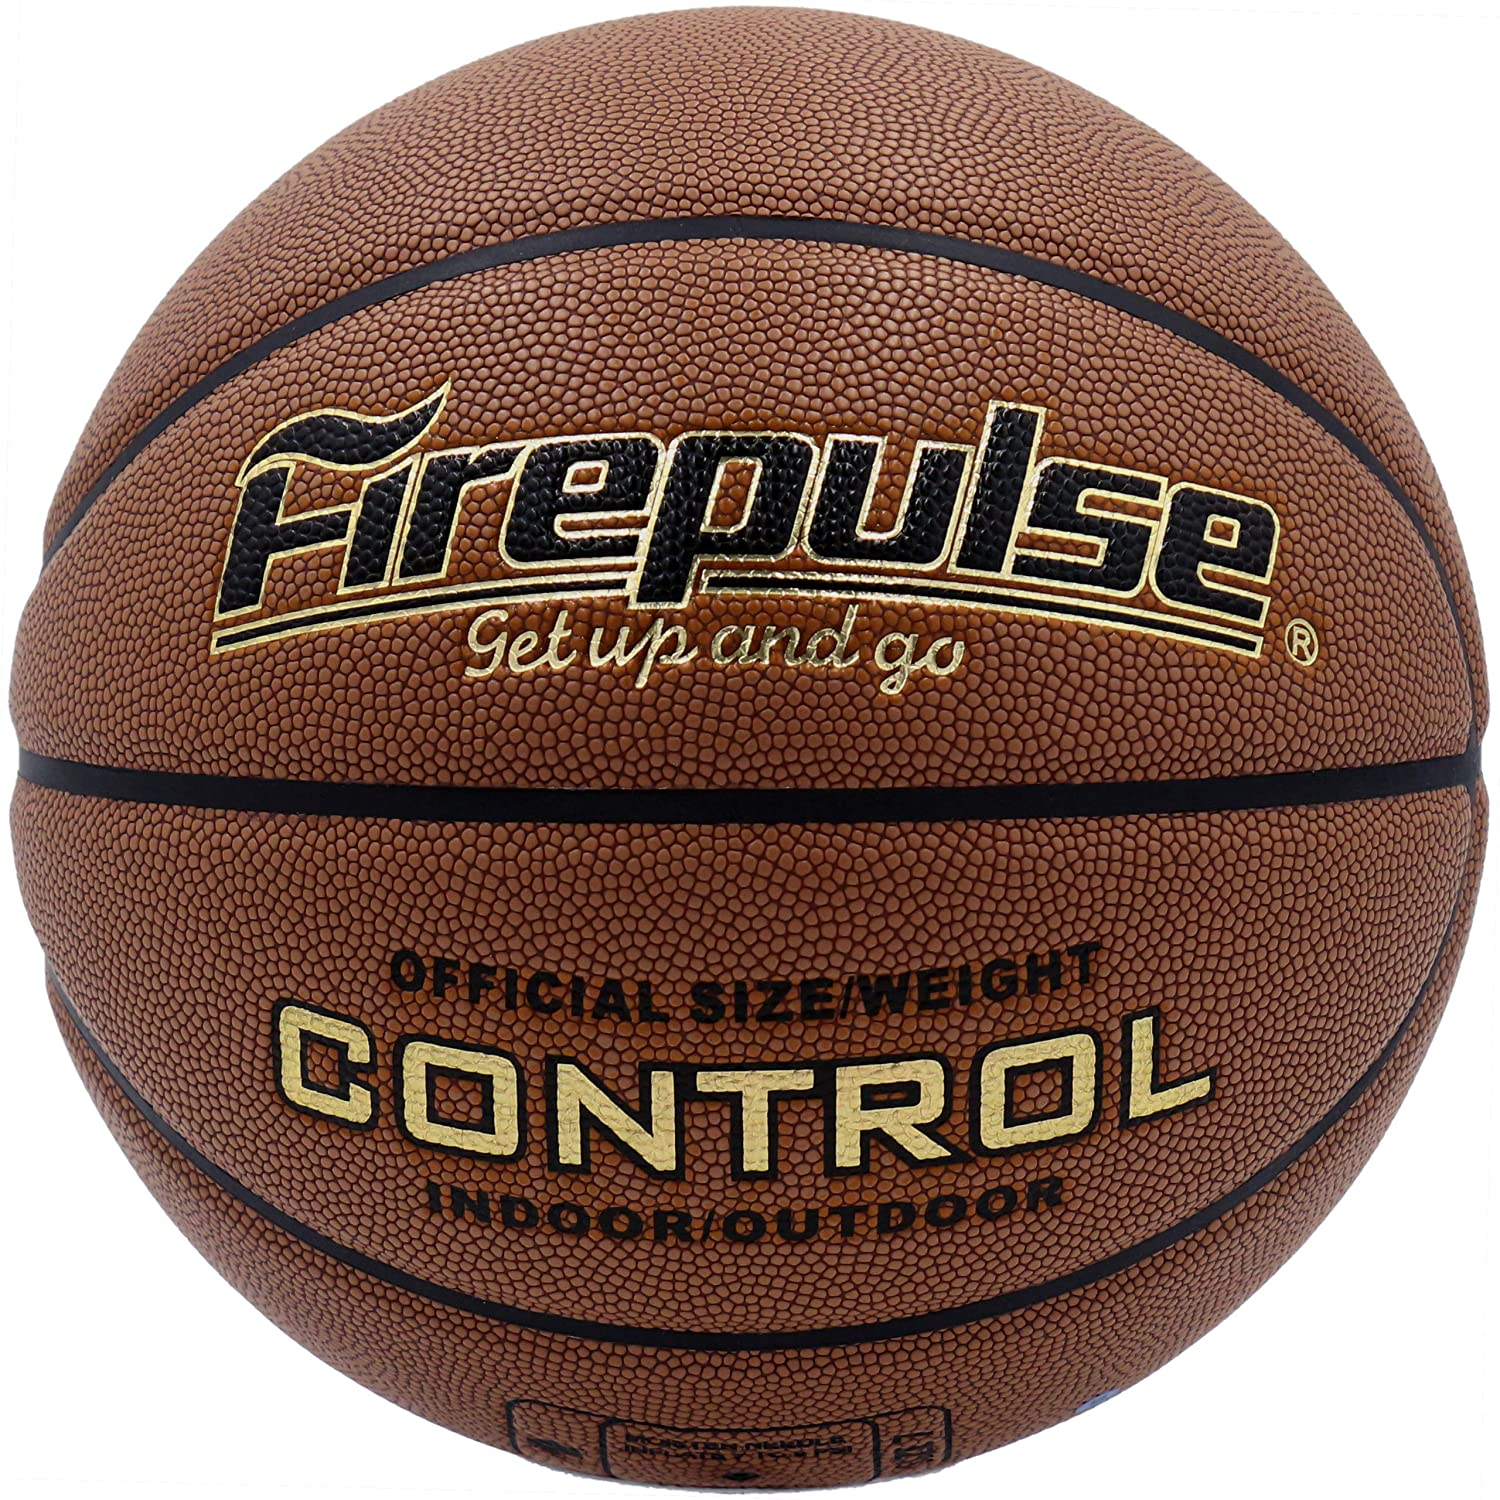 FIREPULSE Control Basketball Official Size 7 29.5 Indoor Outdoor Composite Leather Game Basketballs Brown